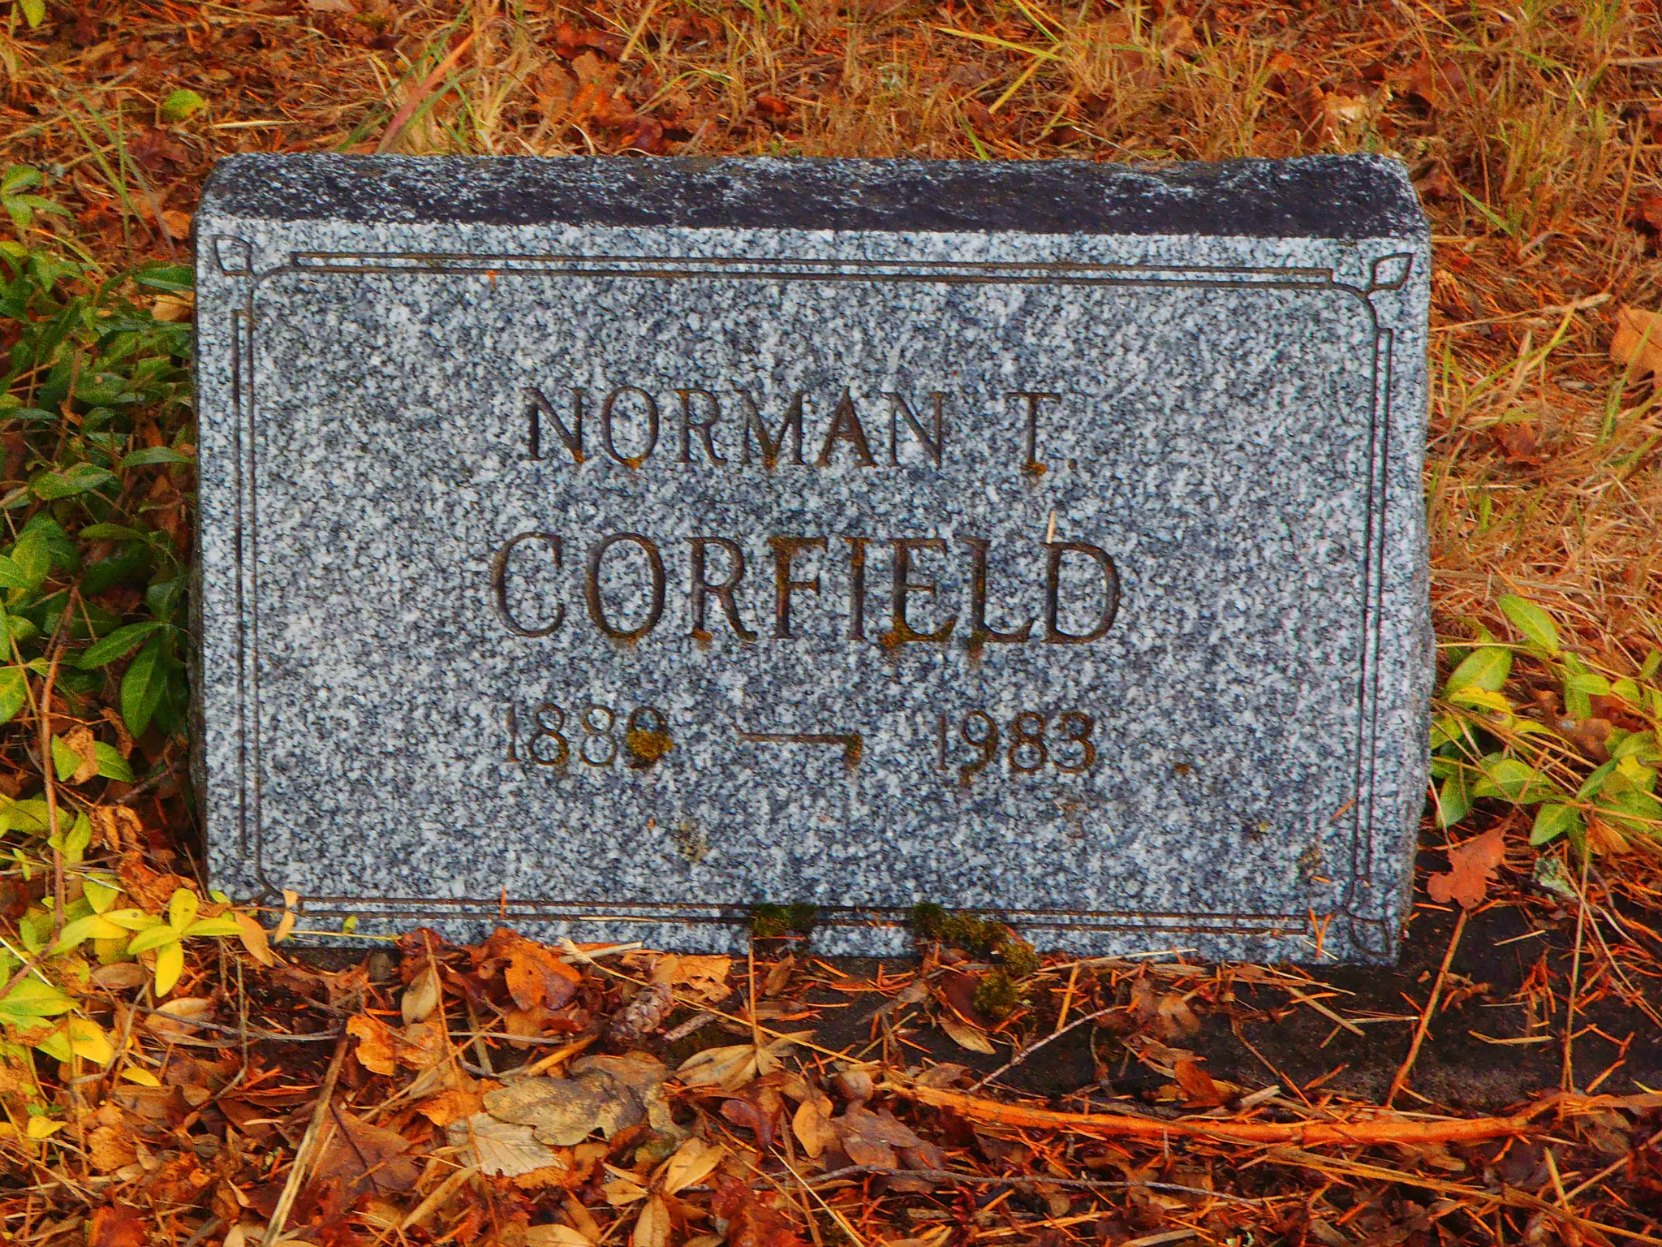 Norman Tressidor Corfield (1889-1983) headstone, St. Peter's Quamichan Anglican Cemetery, North Cowichan, B.C.